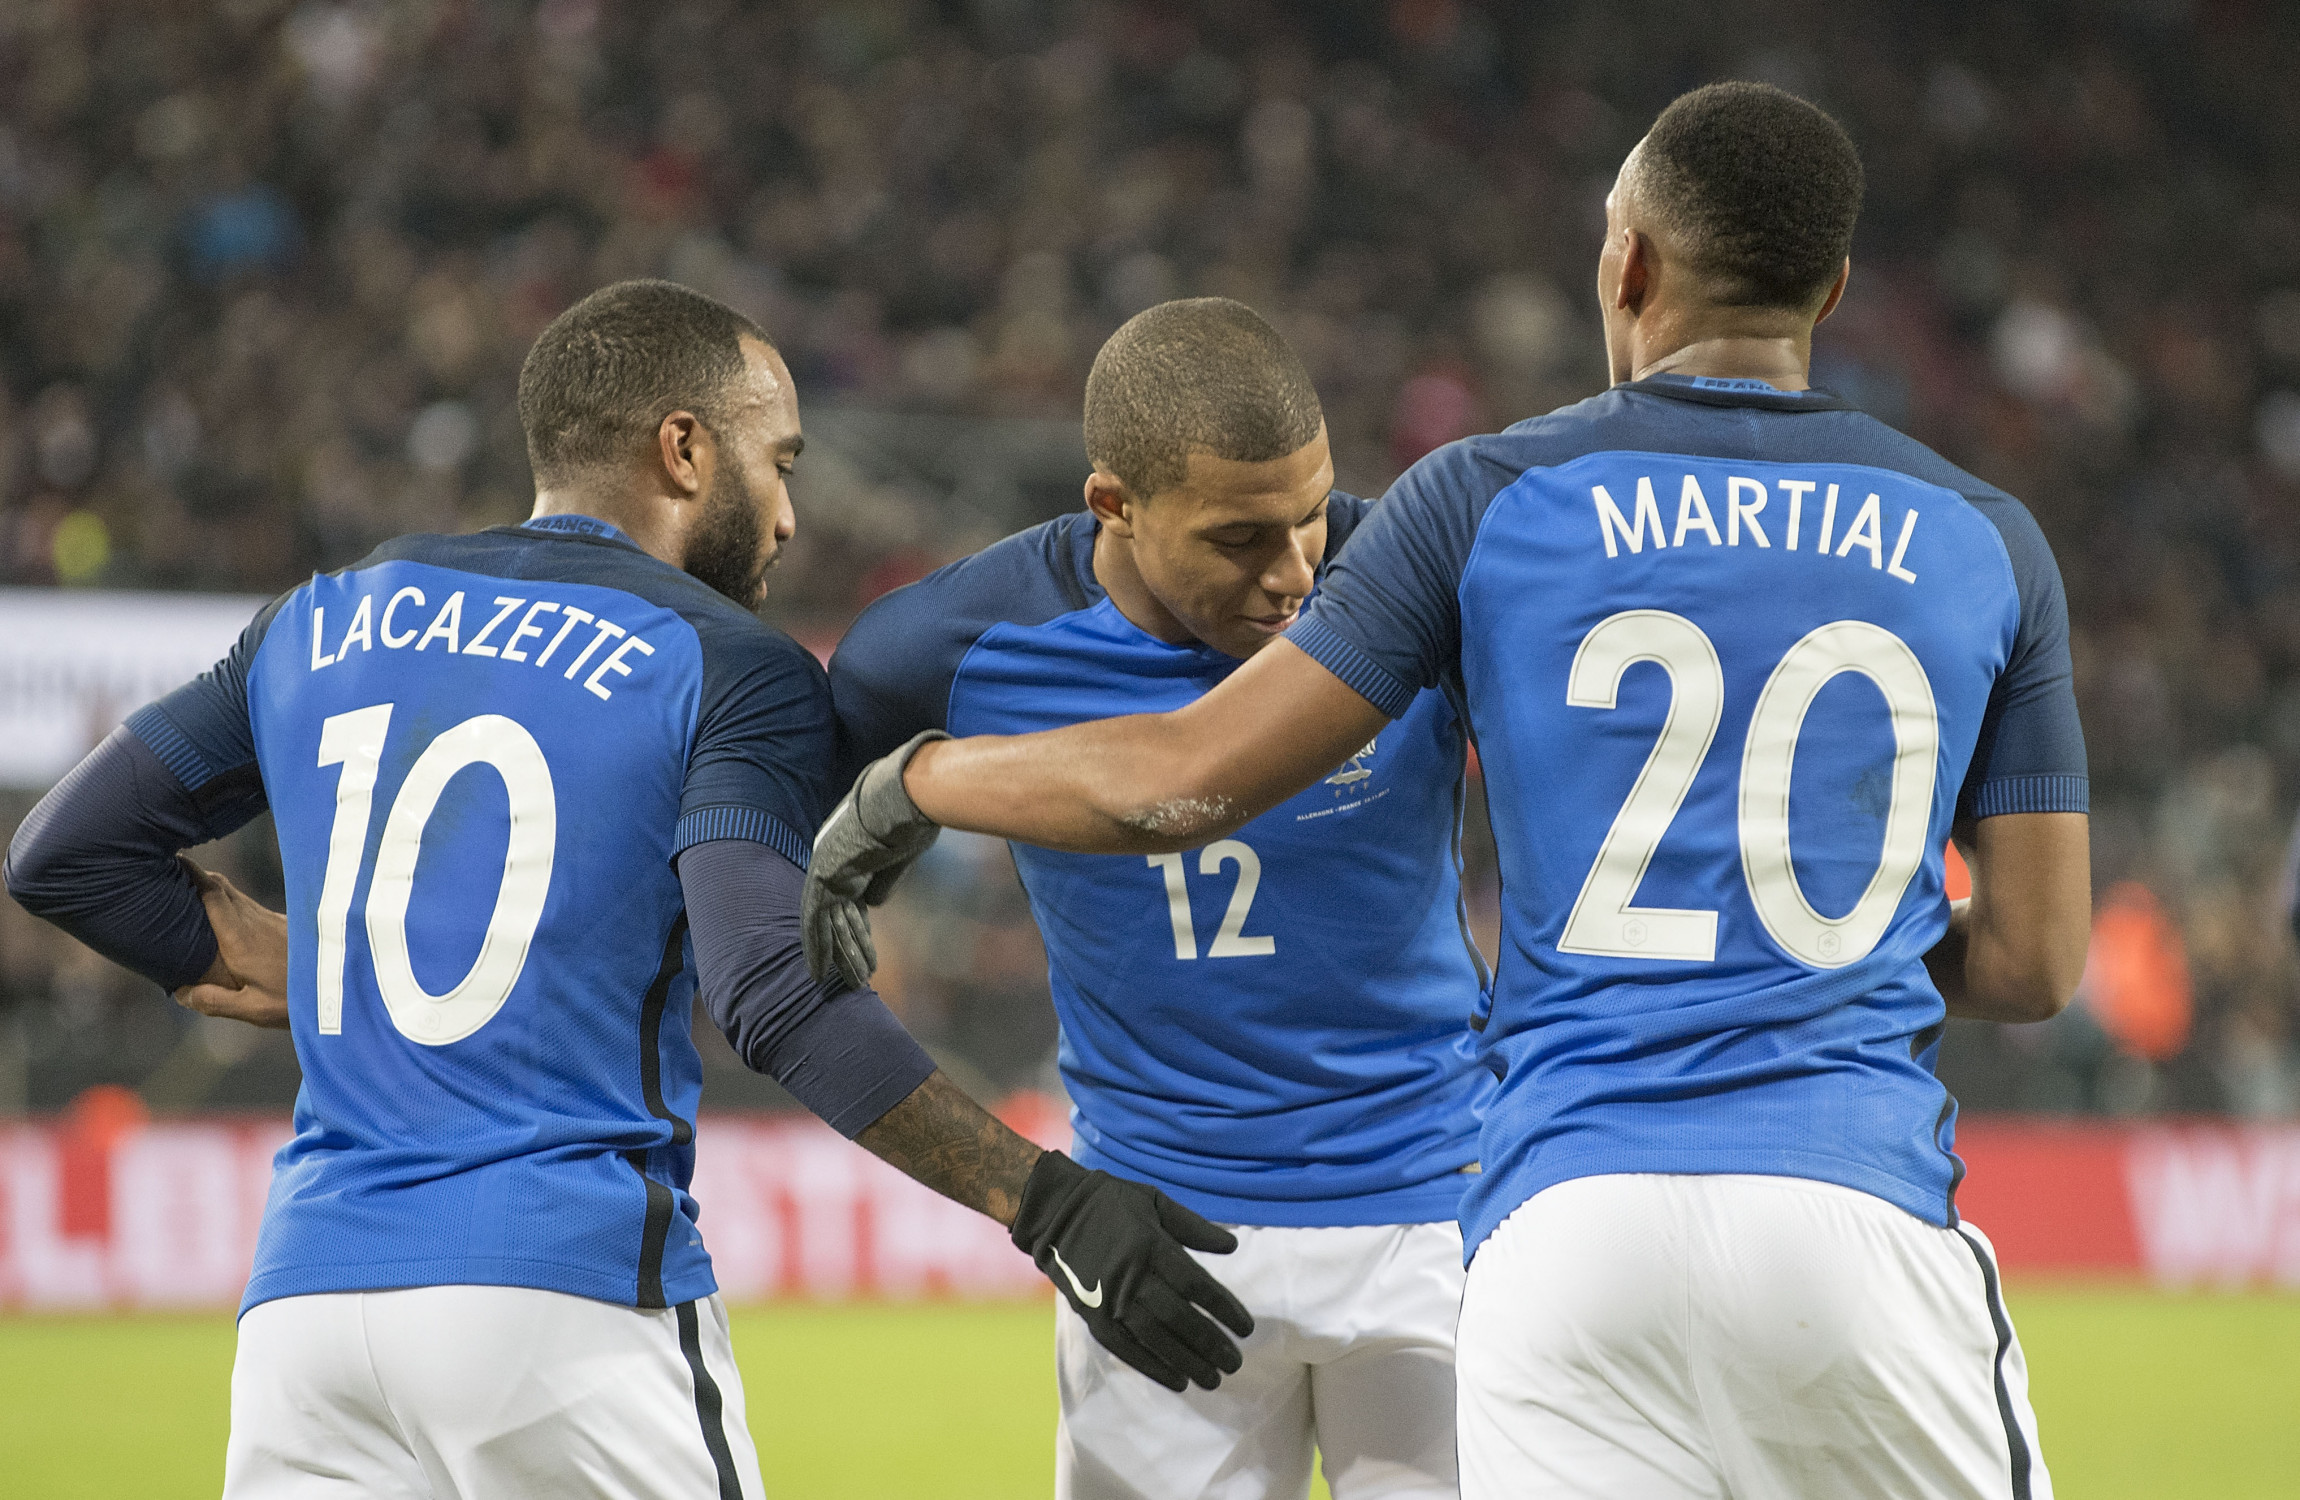 Martial and Lacazette are major absentees in France's World Cup squad